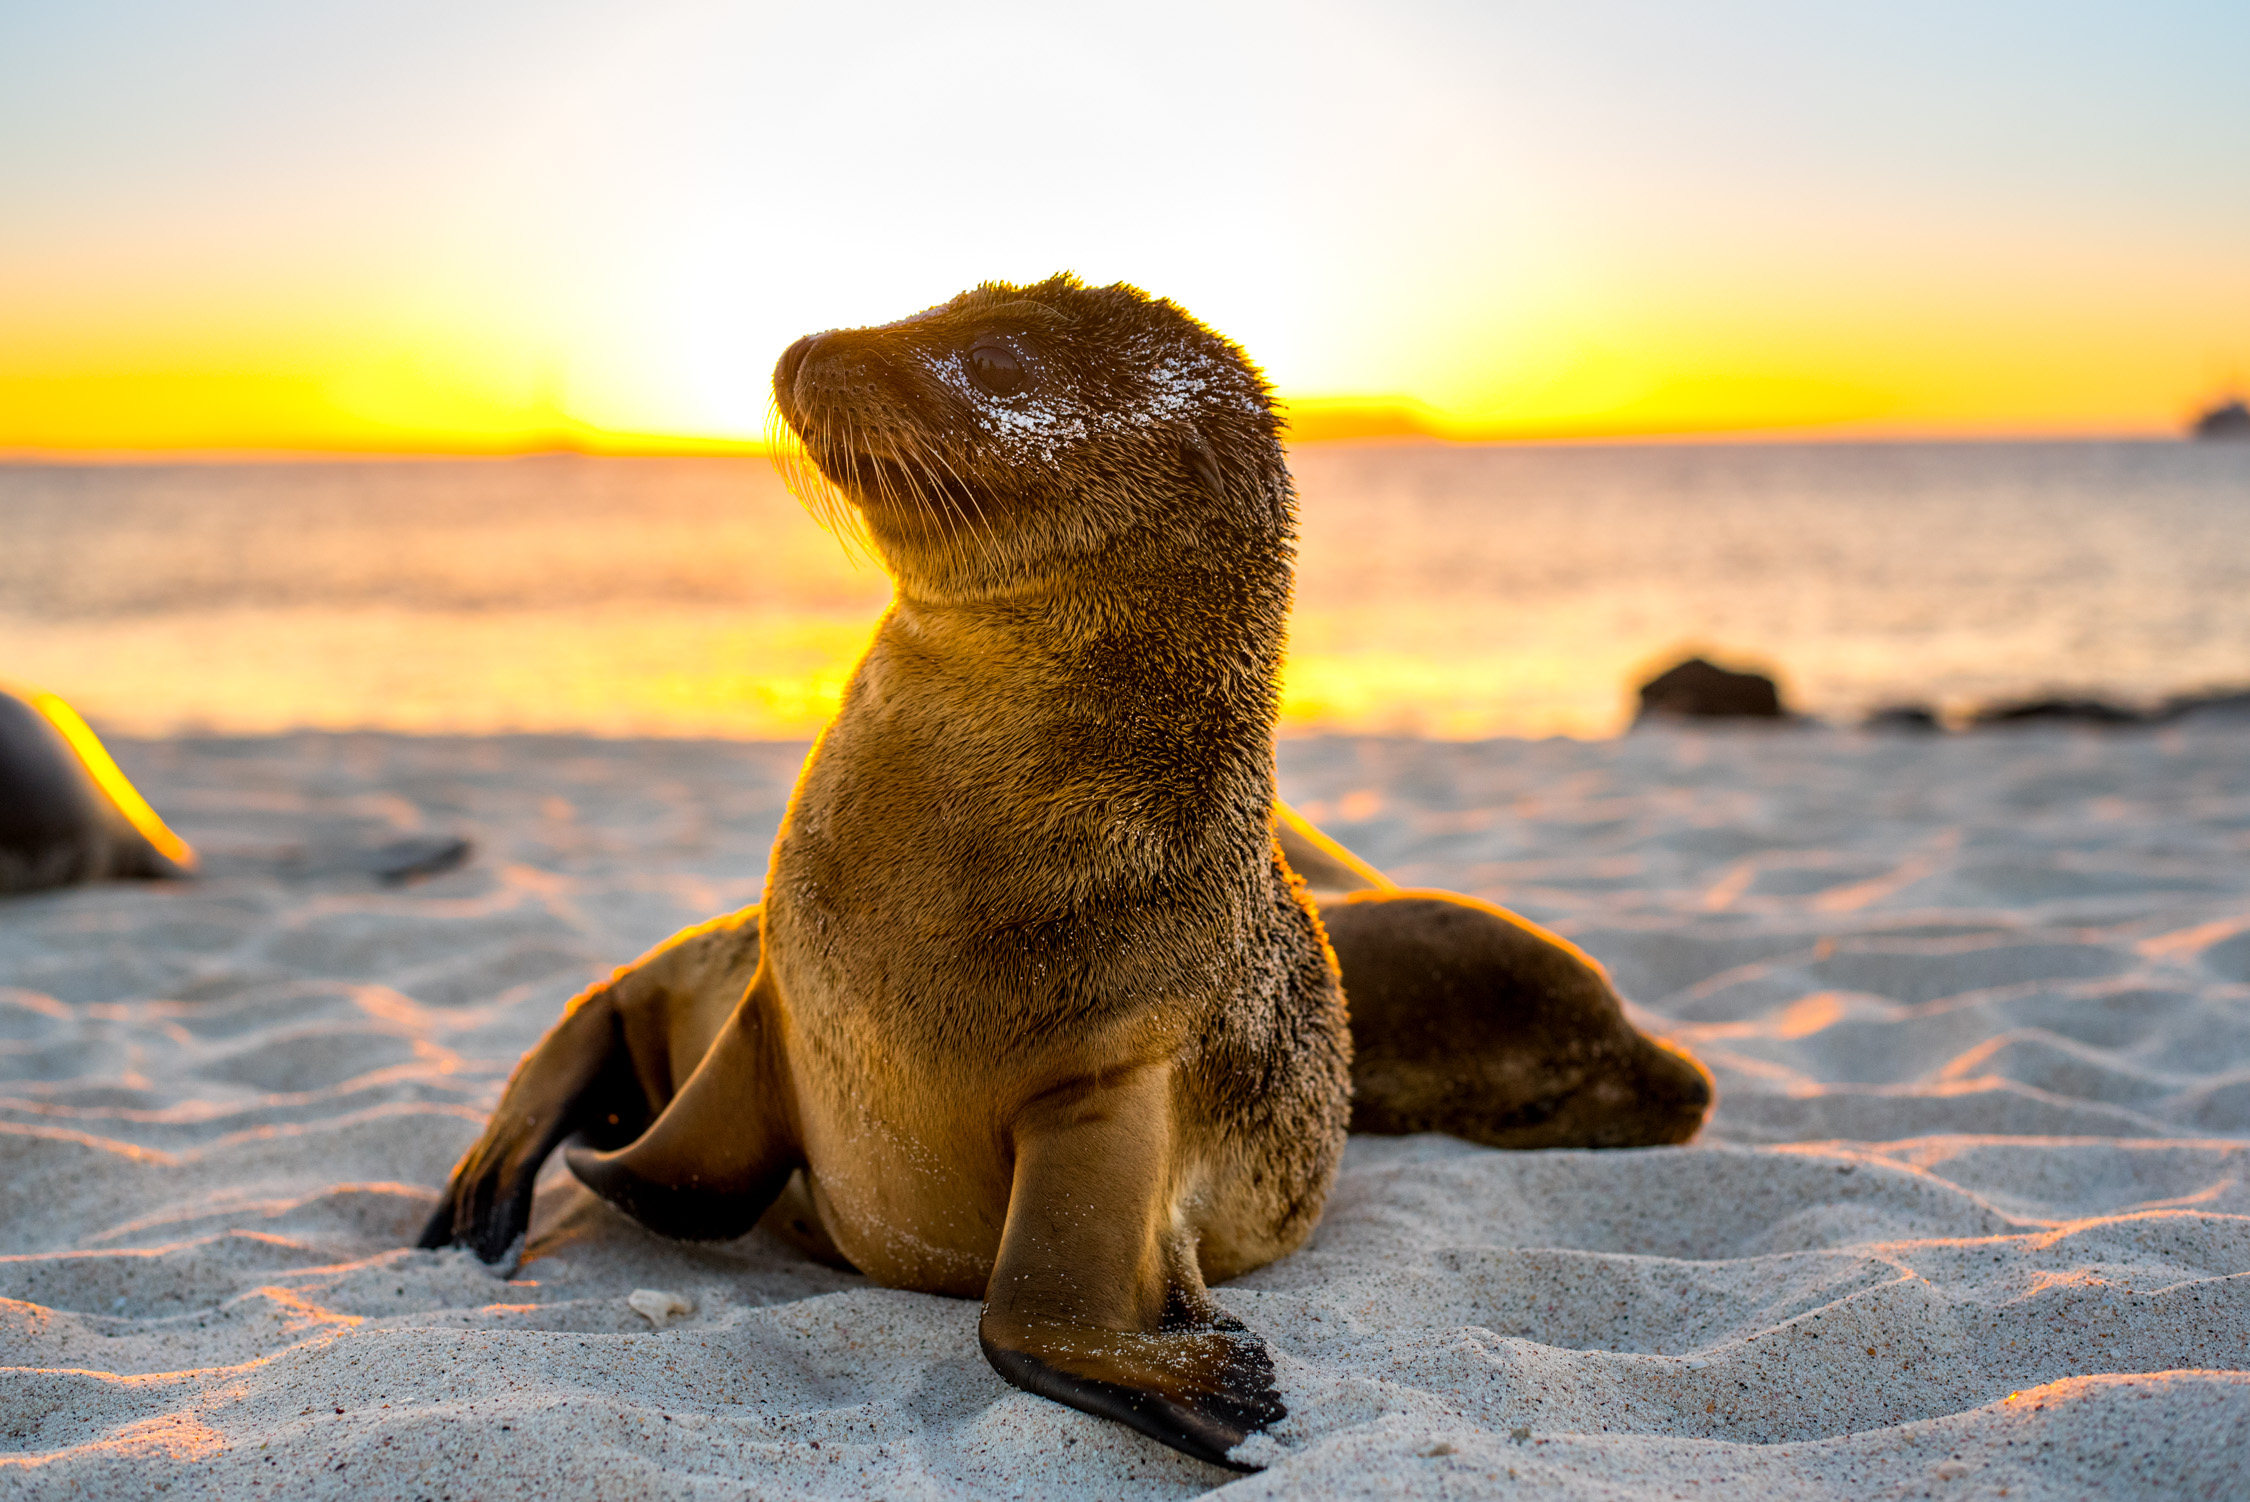 Finding a cruise with plenty of excursions with opportunities to see as much wildlife as possible, was our top priority! The Evolution, part of Quasar Expeditions gave us this.